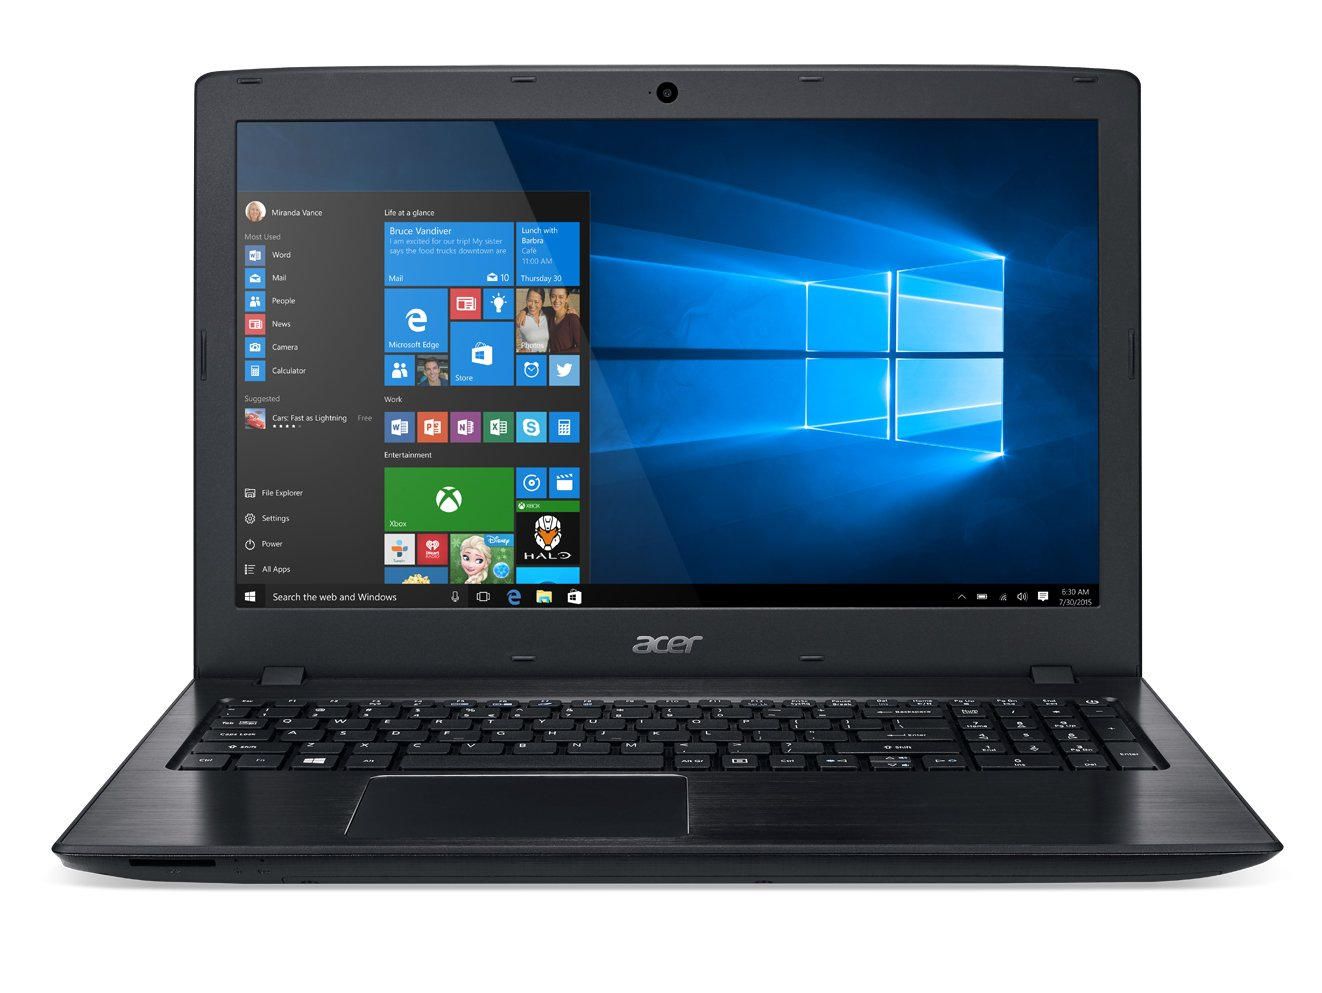 Acer Aspire E 15, 15.6″ Full HD, 8th Gen Intel Core i3-8130U, 6GB RAM Memory, 1TB HDD